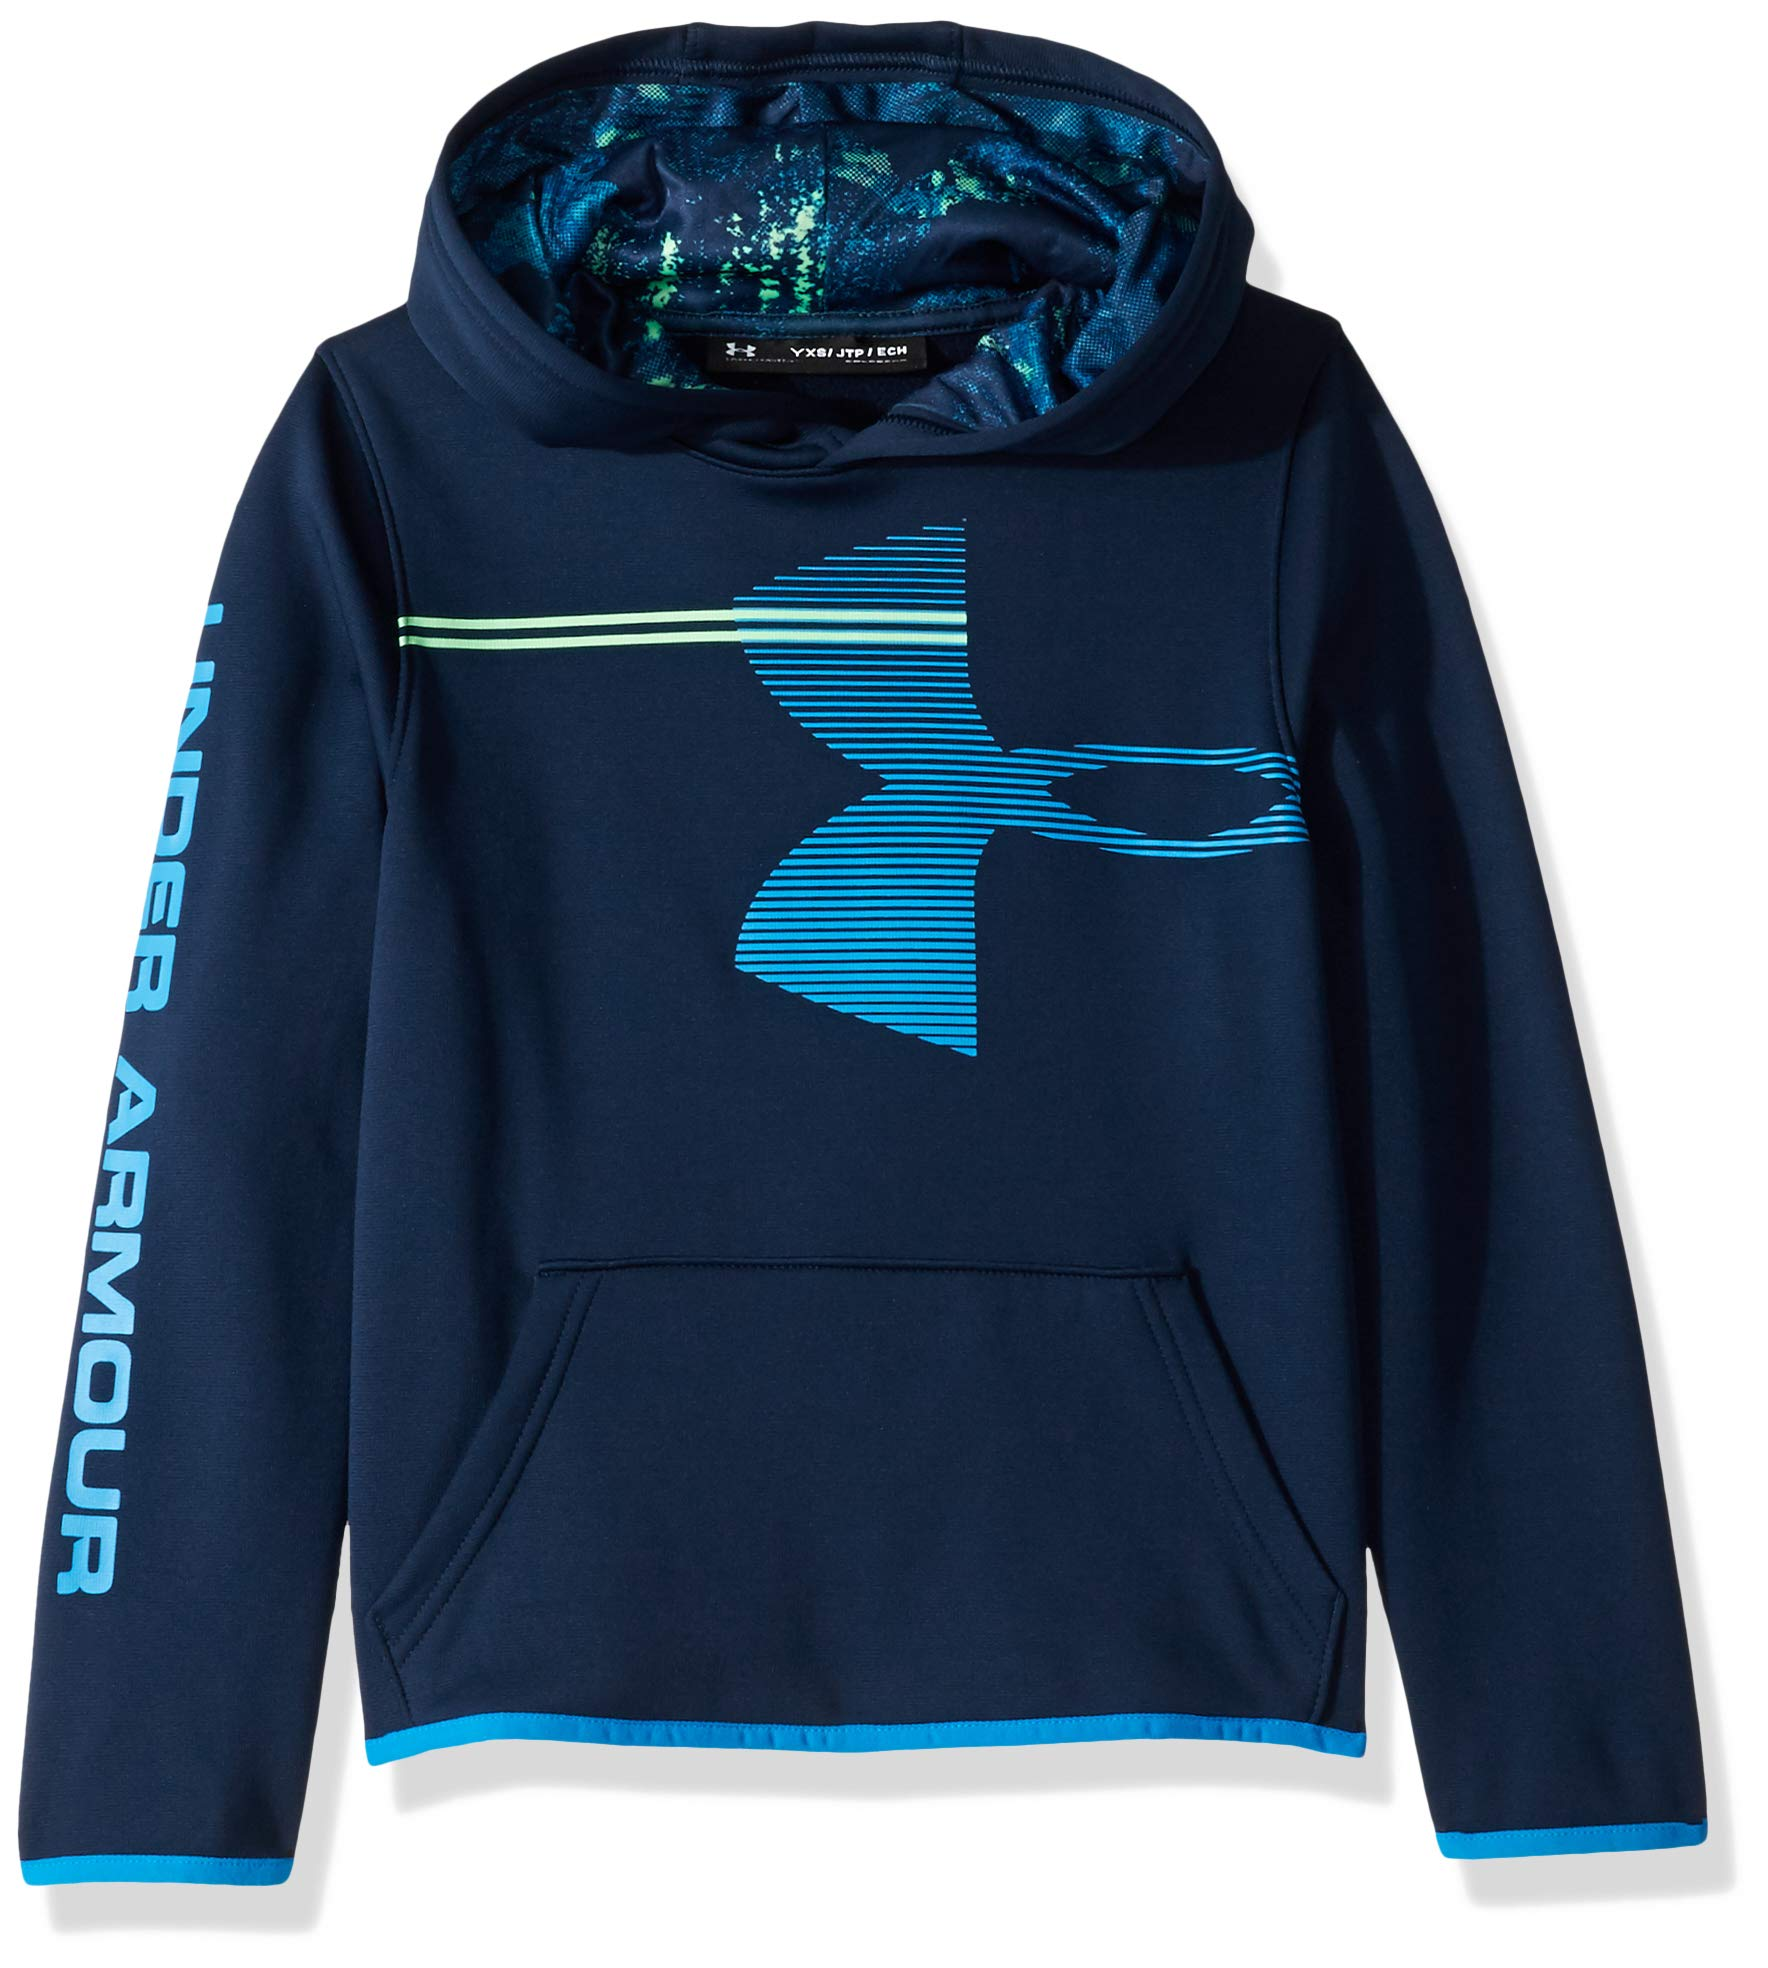 Under Armour Boys' Armour Fleece Hoodie, Academy (408)/Blue Circuit, Youth X-Large by Under Armour